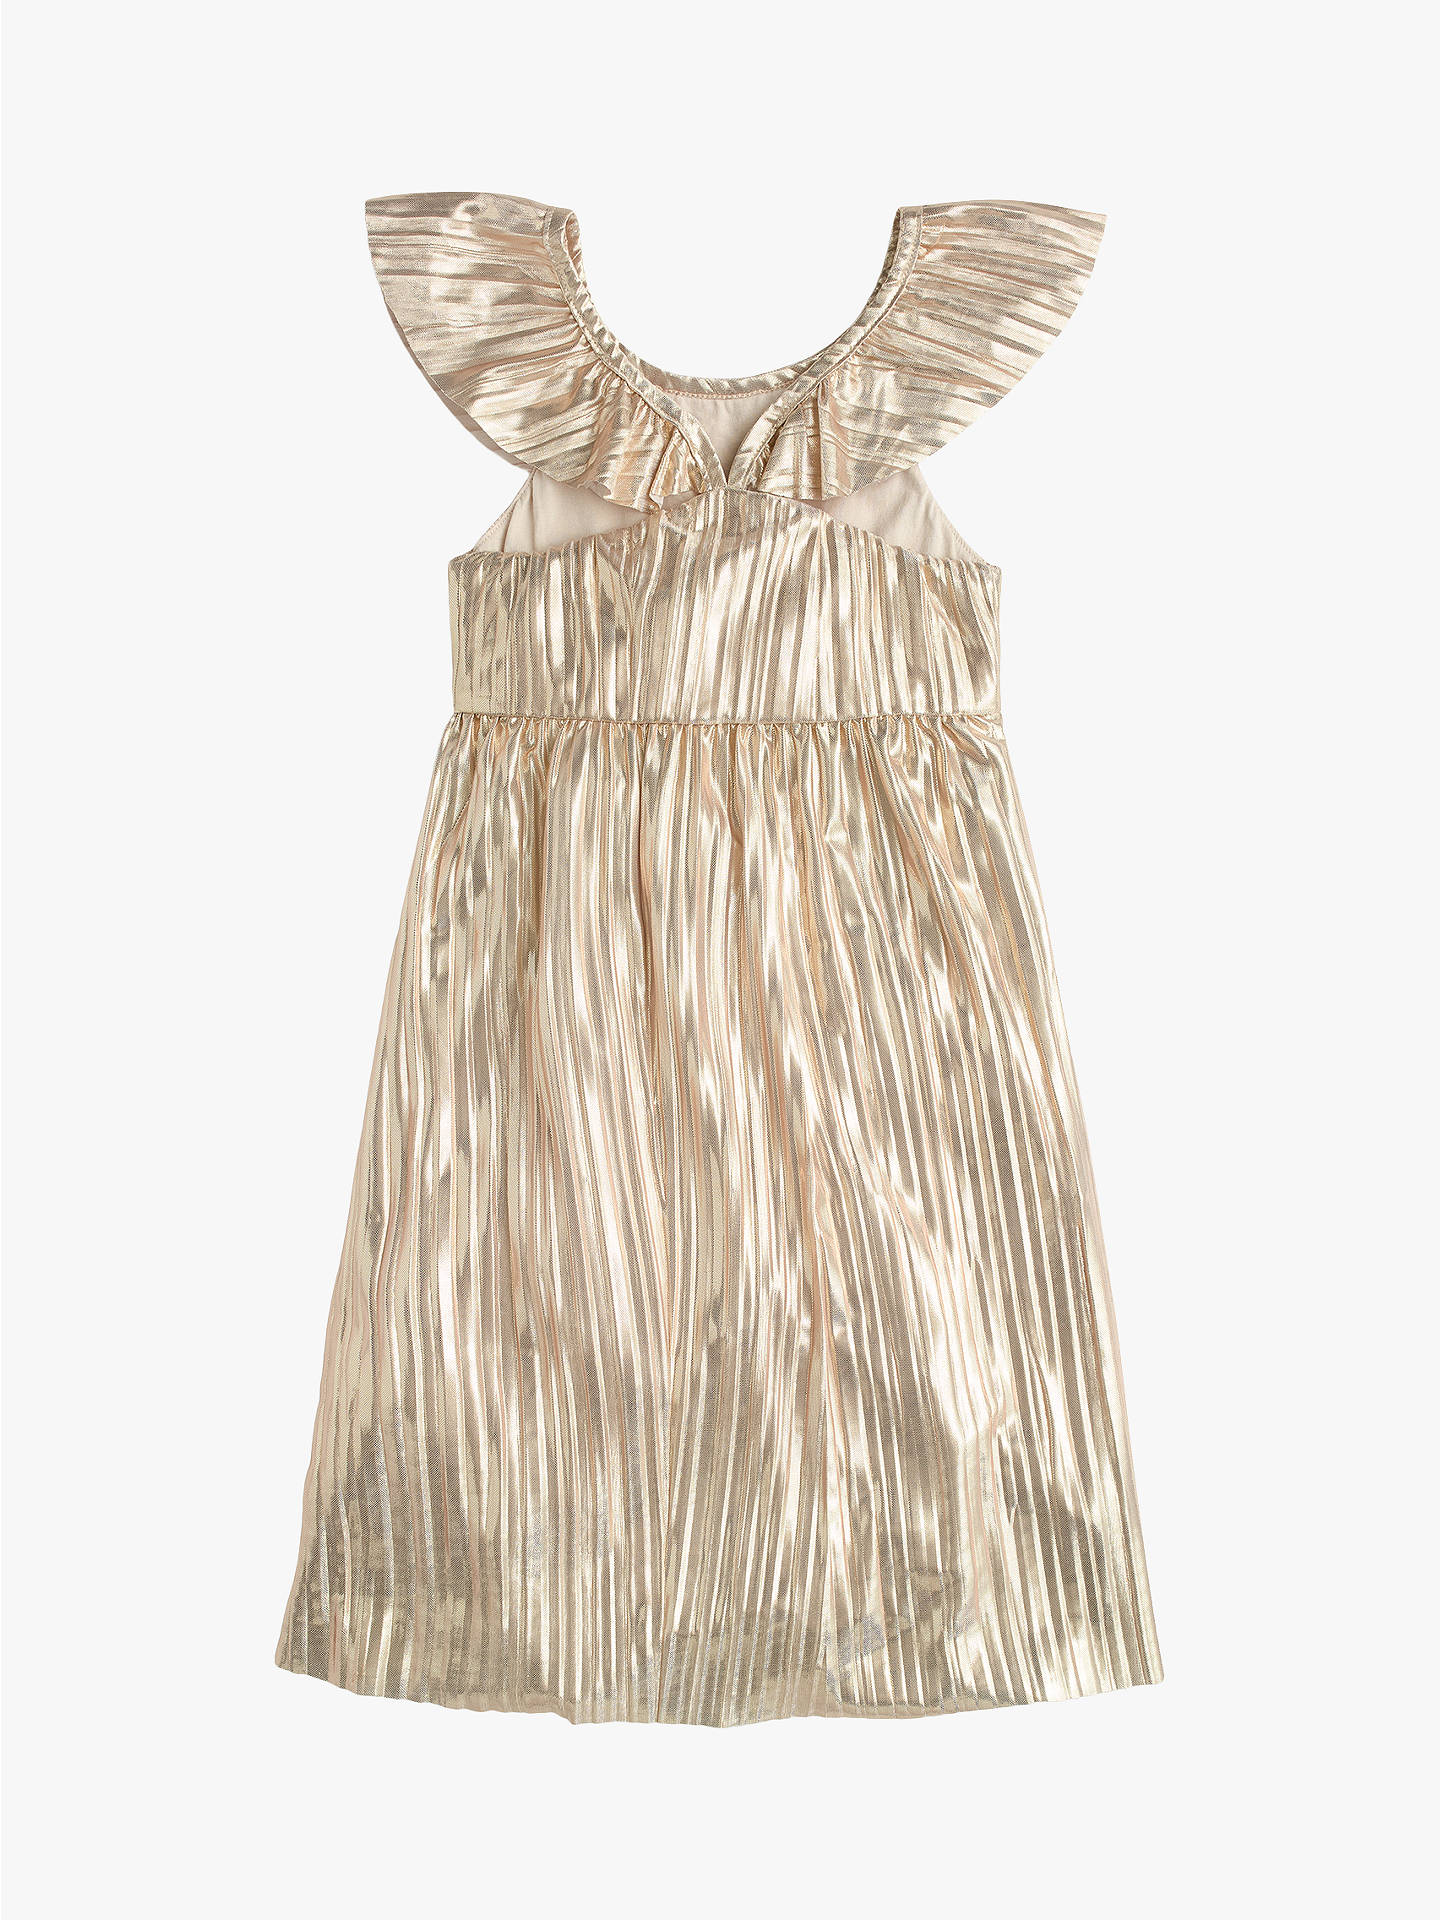 65cbc4580d7 ... Buy crewcuts by J.Crew Girls  Shimmer Dress